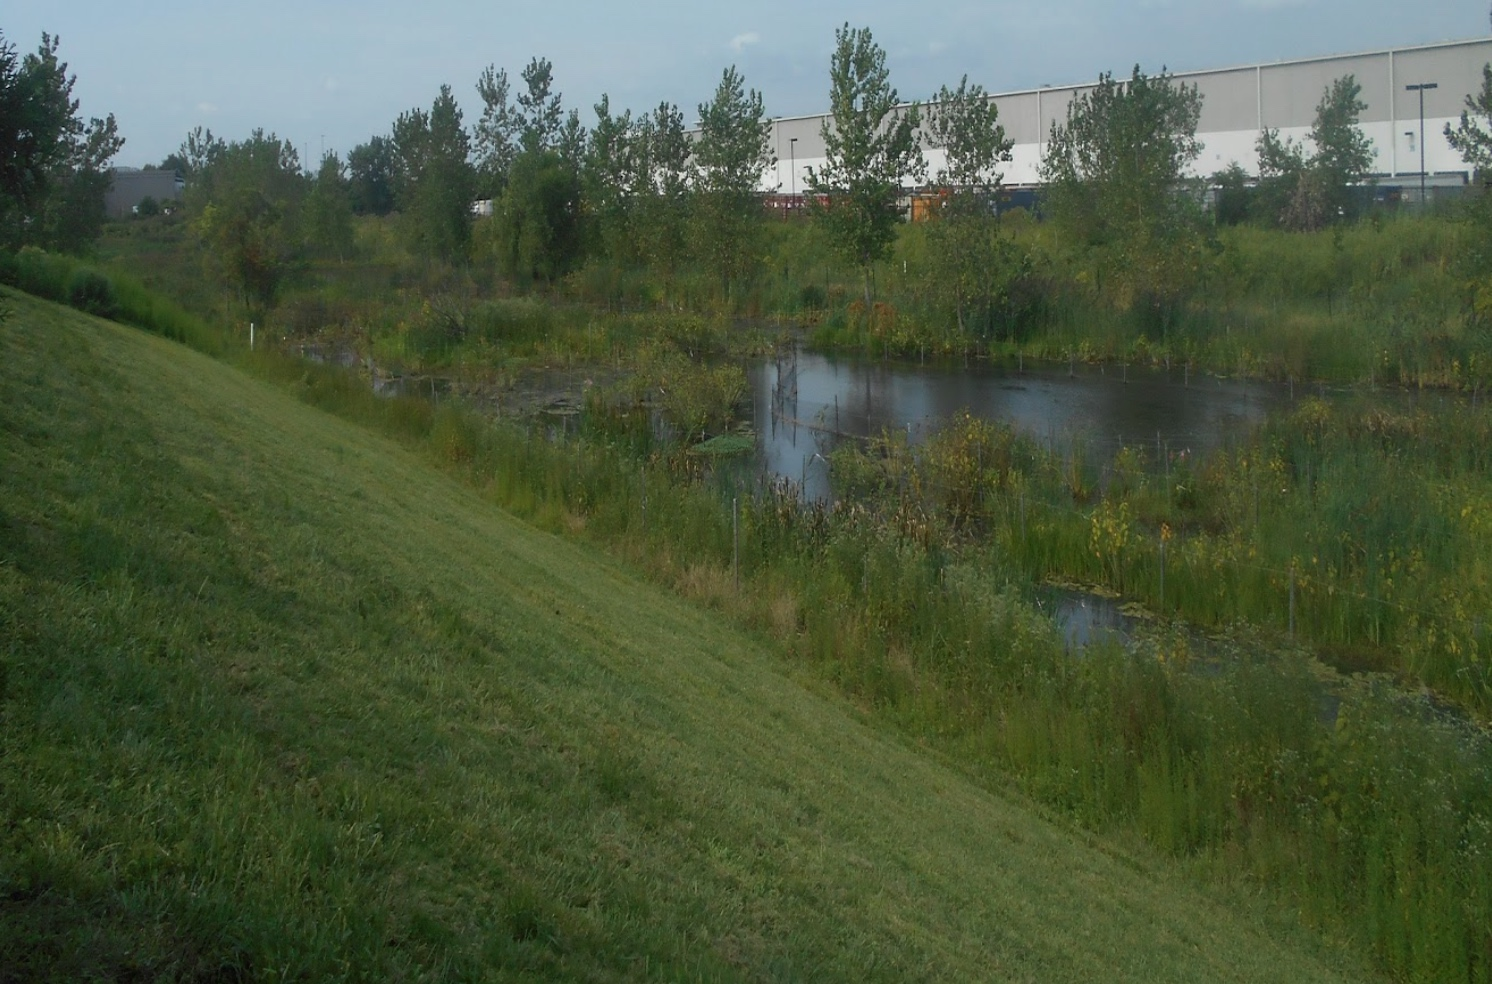 The mitigation plan focused on enhancing the existing wetland by eradicating non-native-invasive plant species, like Phragmites, and establishing more diverse population of productive, native species with high ecological value.